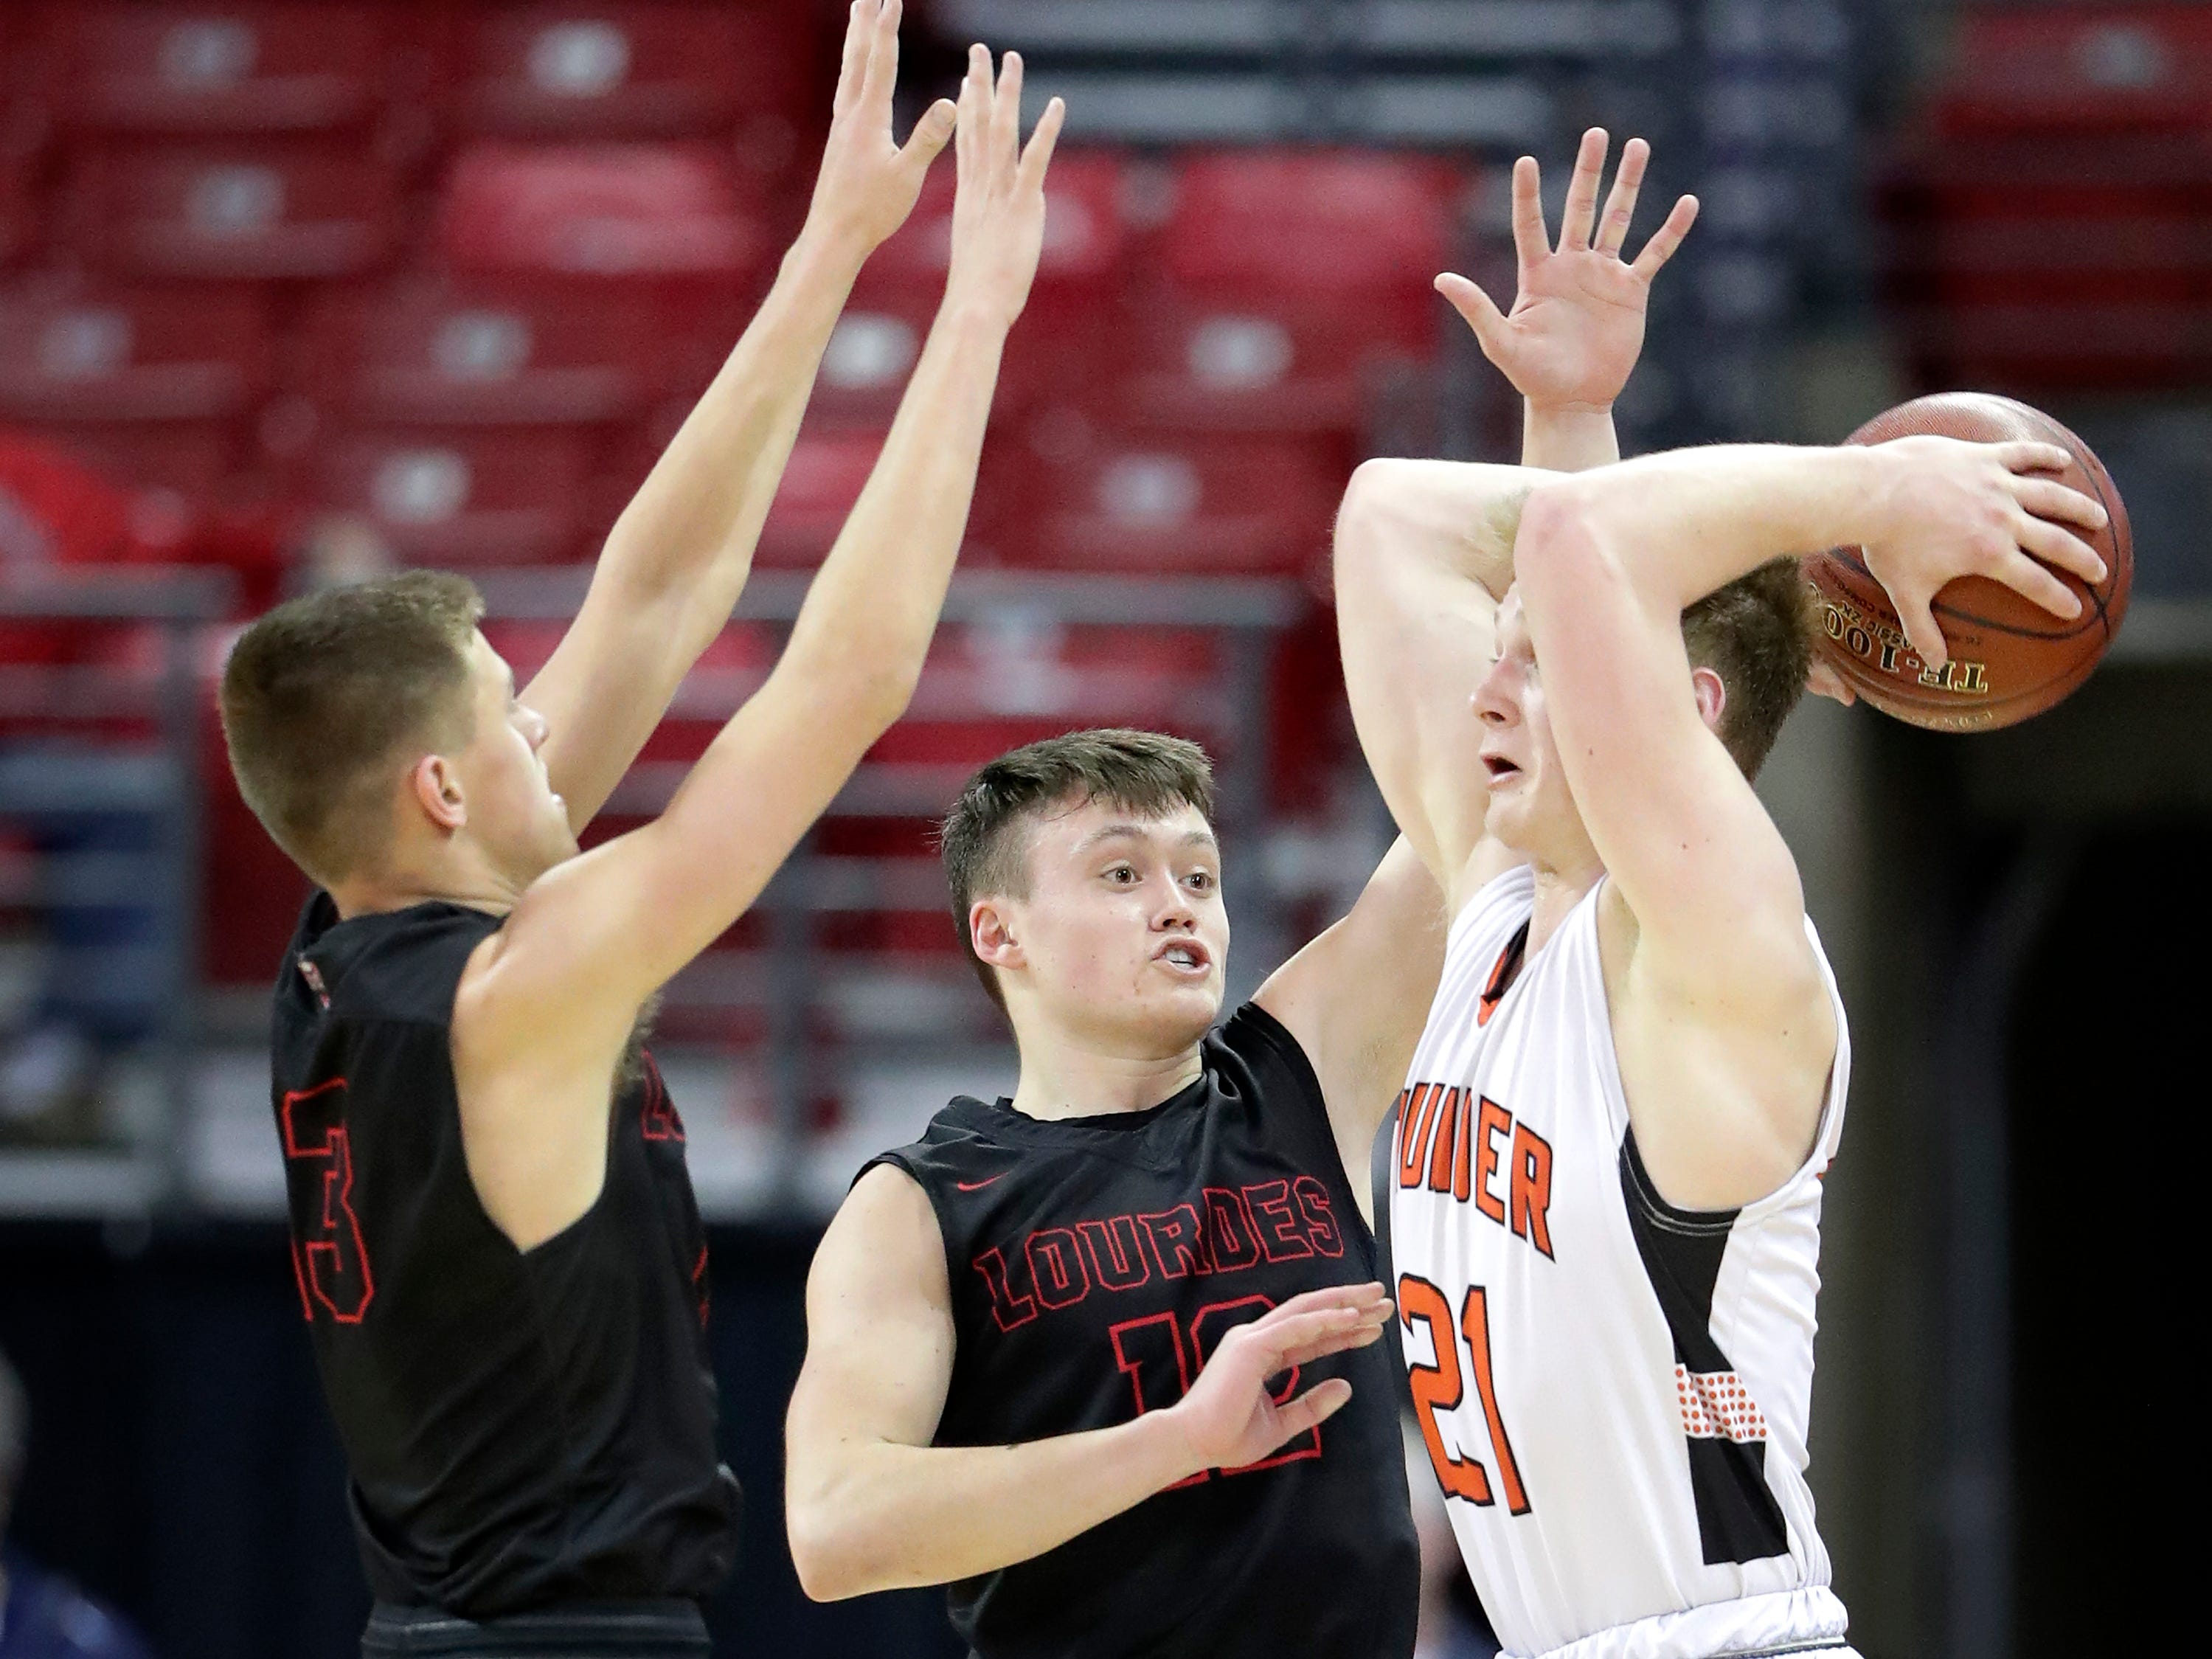 Lourdes Academy's #13 Caden Chier and #12 Joshua Bauer battle against Osseo-Fairchild High School's #21 Logan Mulherm during their WIAA Division 4 boys basketball state semifinal on Thursday, March 14, 2019, at the Kohl Center in Madison, Wis.